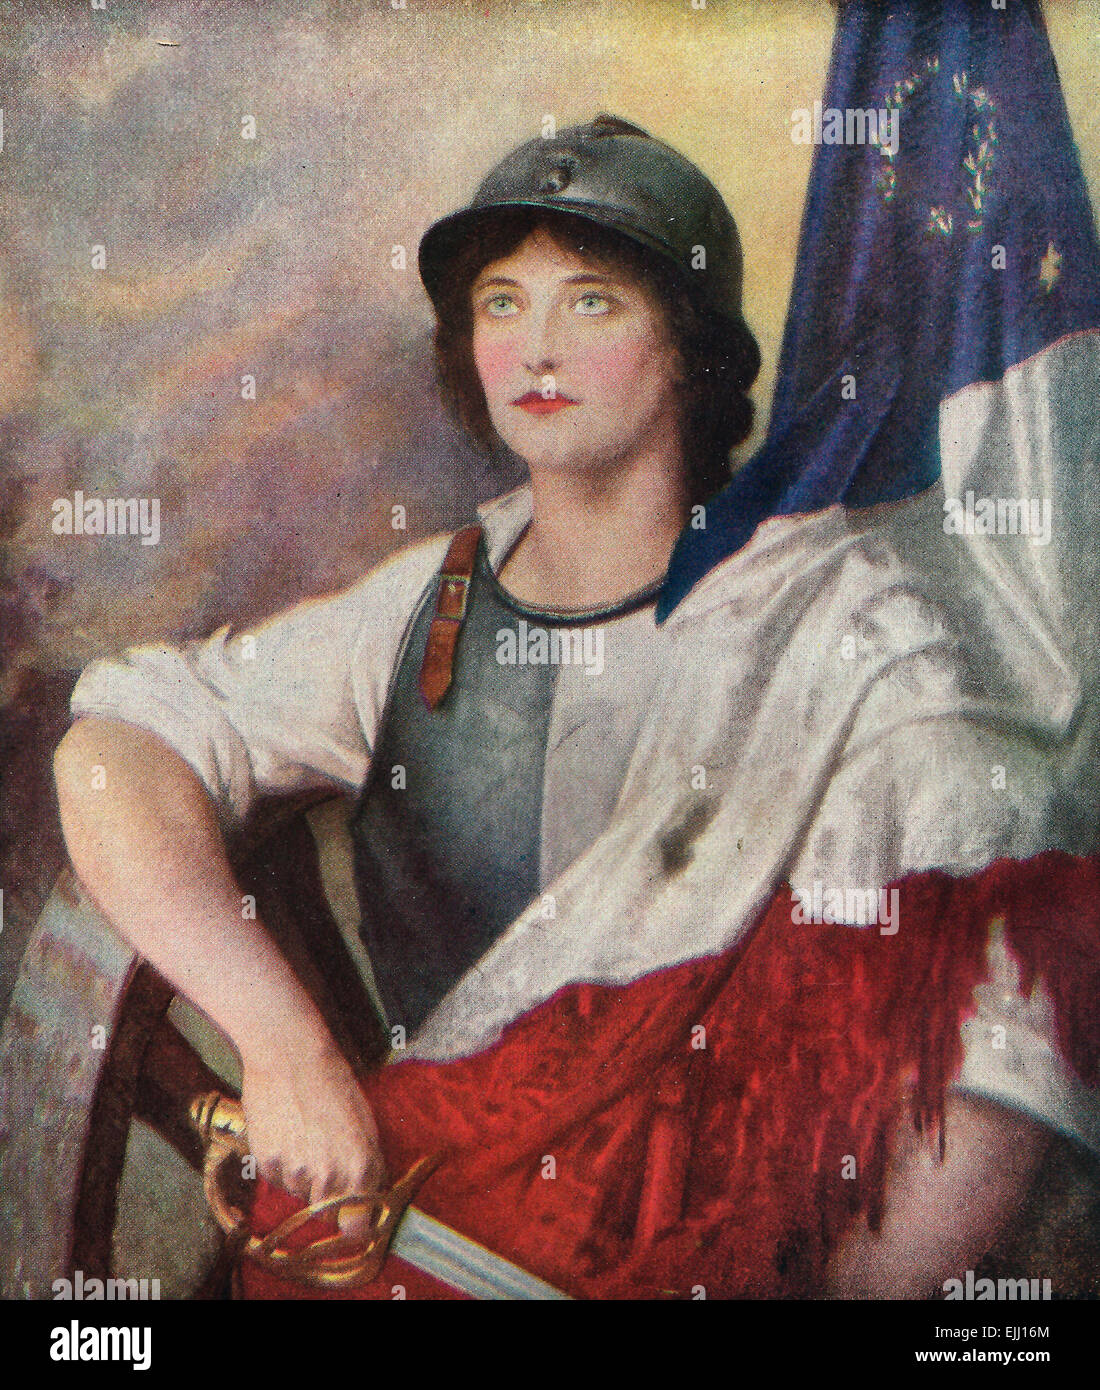 Verdun - A woman, presumably Joan of Arc, with French Flag and sword - Stock Image